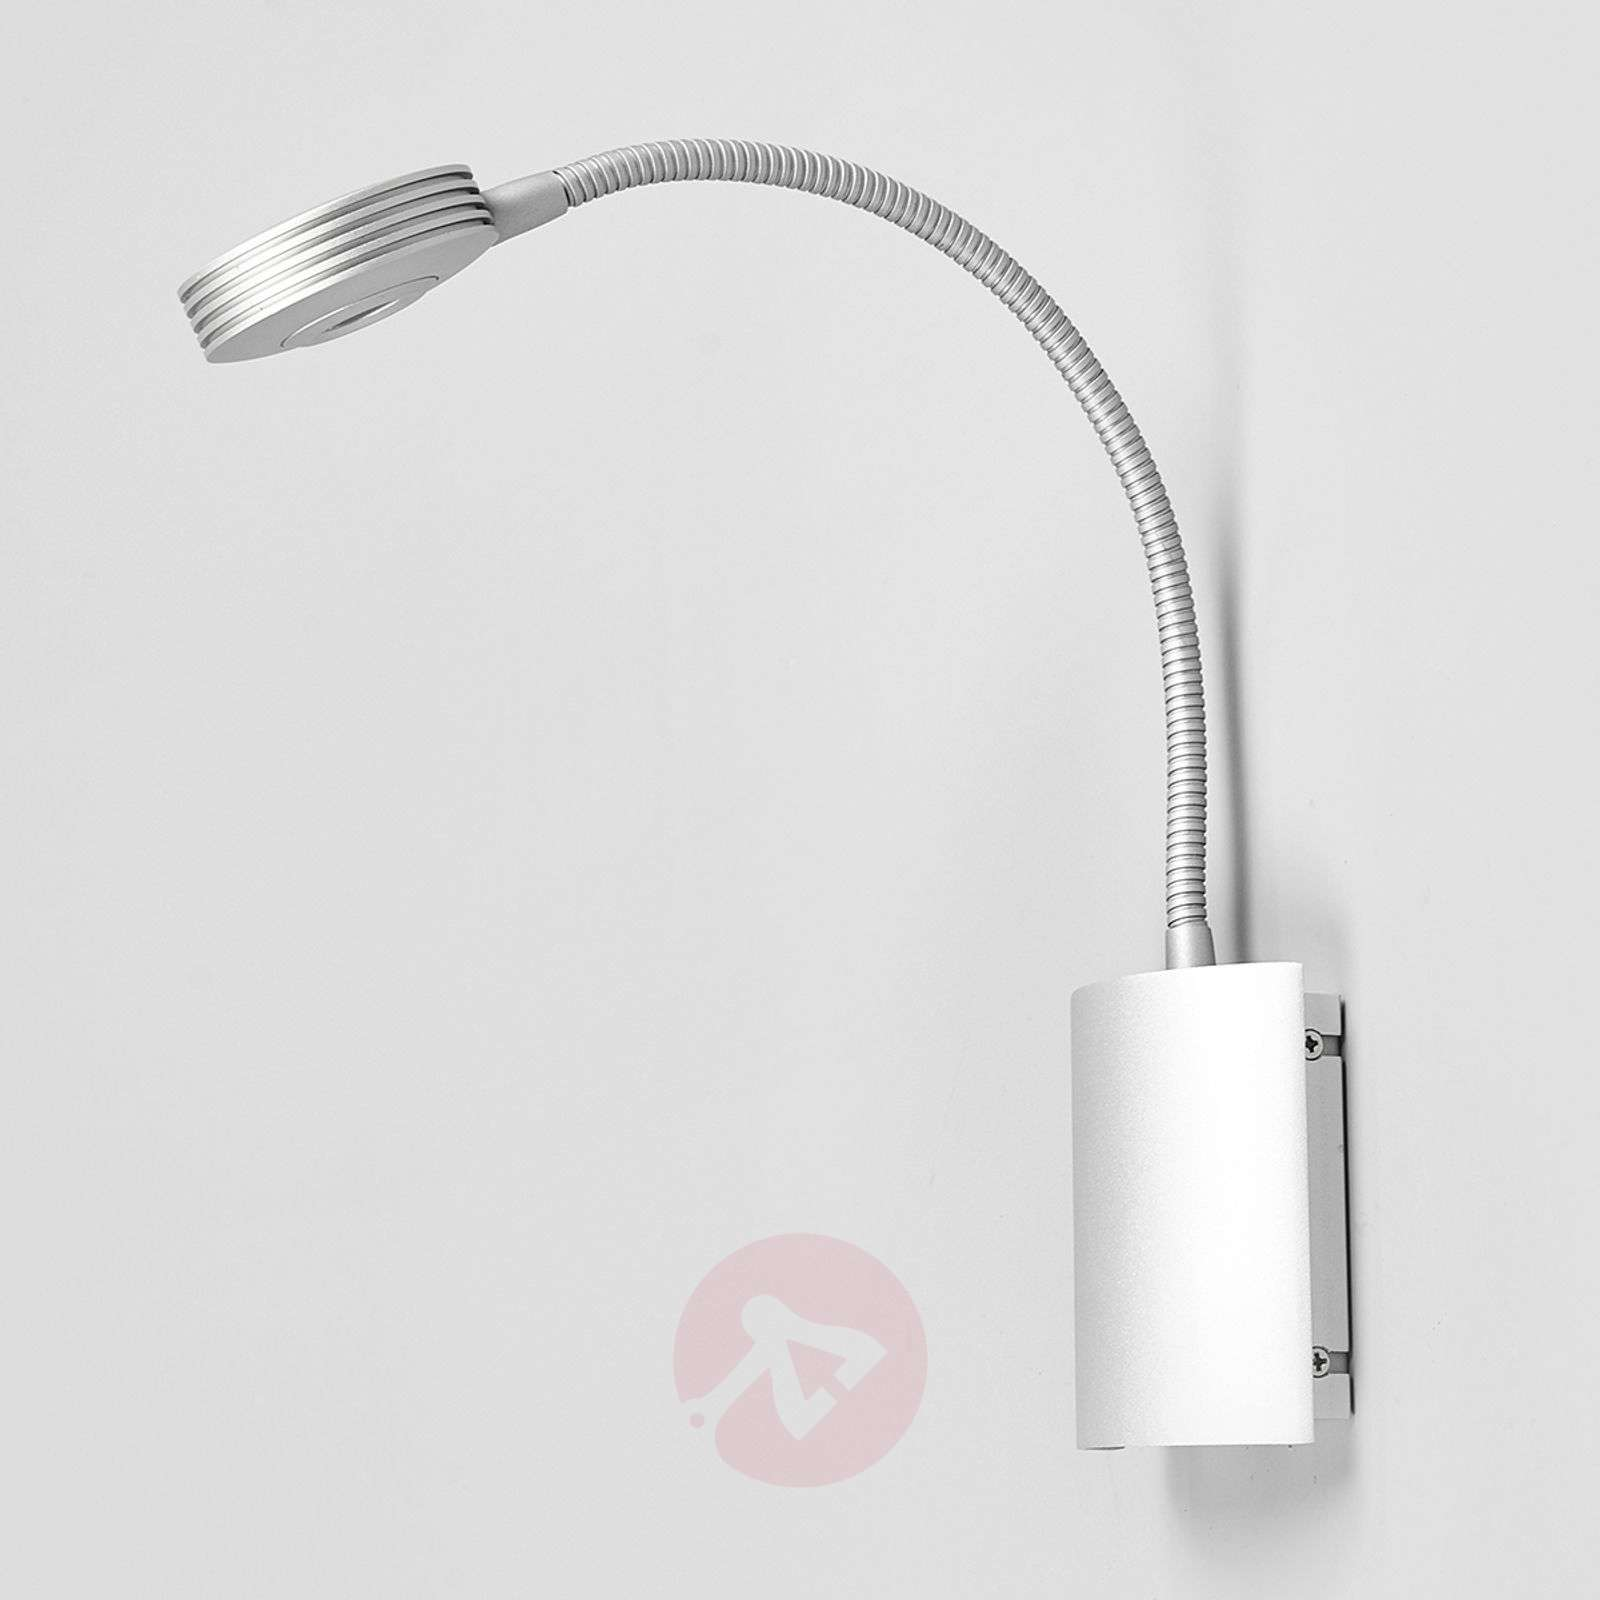 Adjustable wall light adina with led flexible arm lights adjustable wall light adina with led flexible arm 9976004 07 aloadofball Image collections